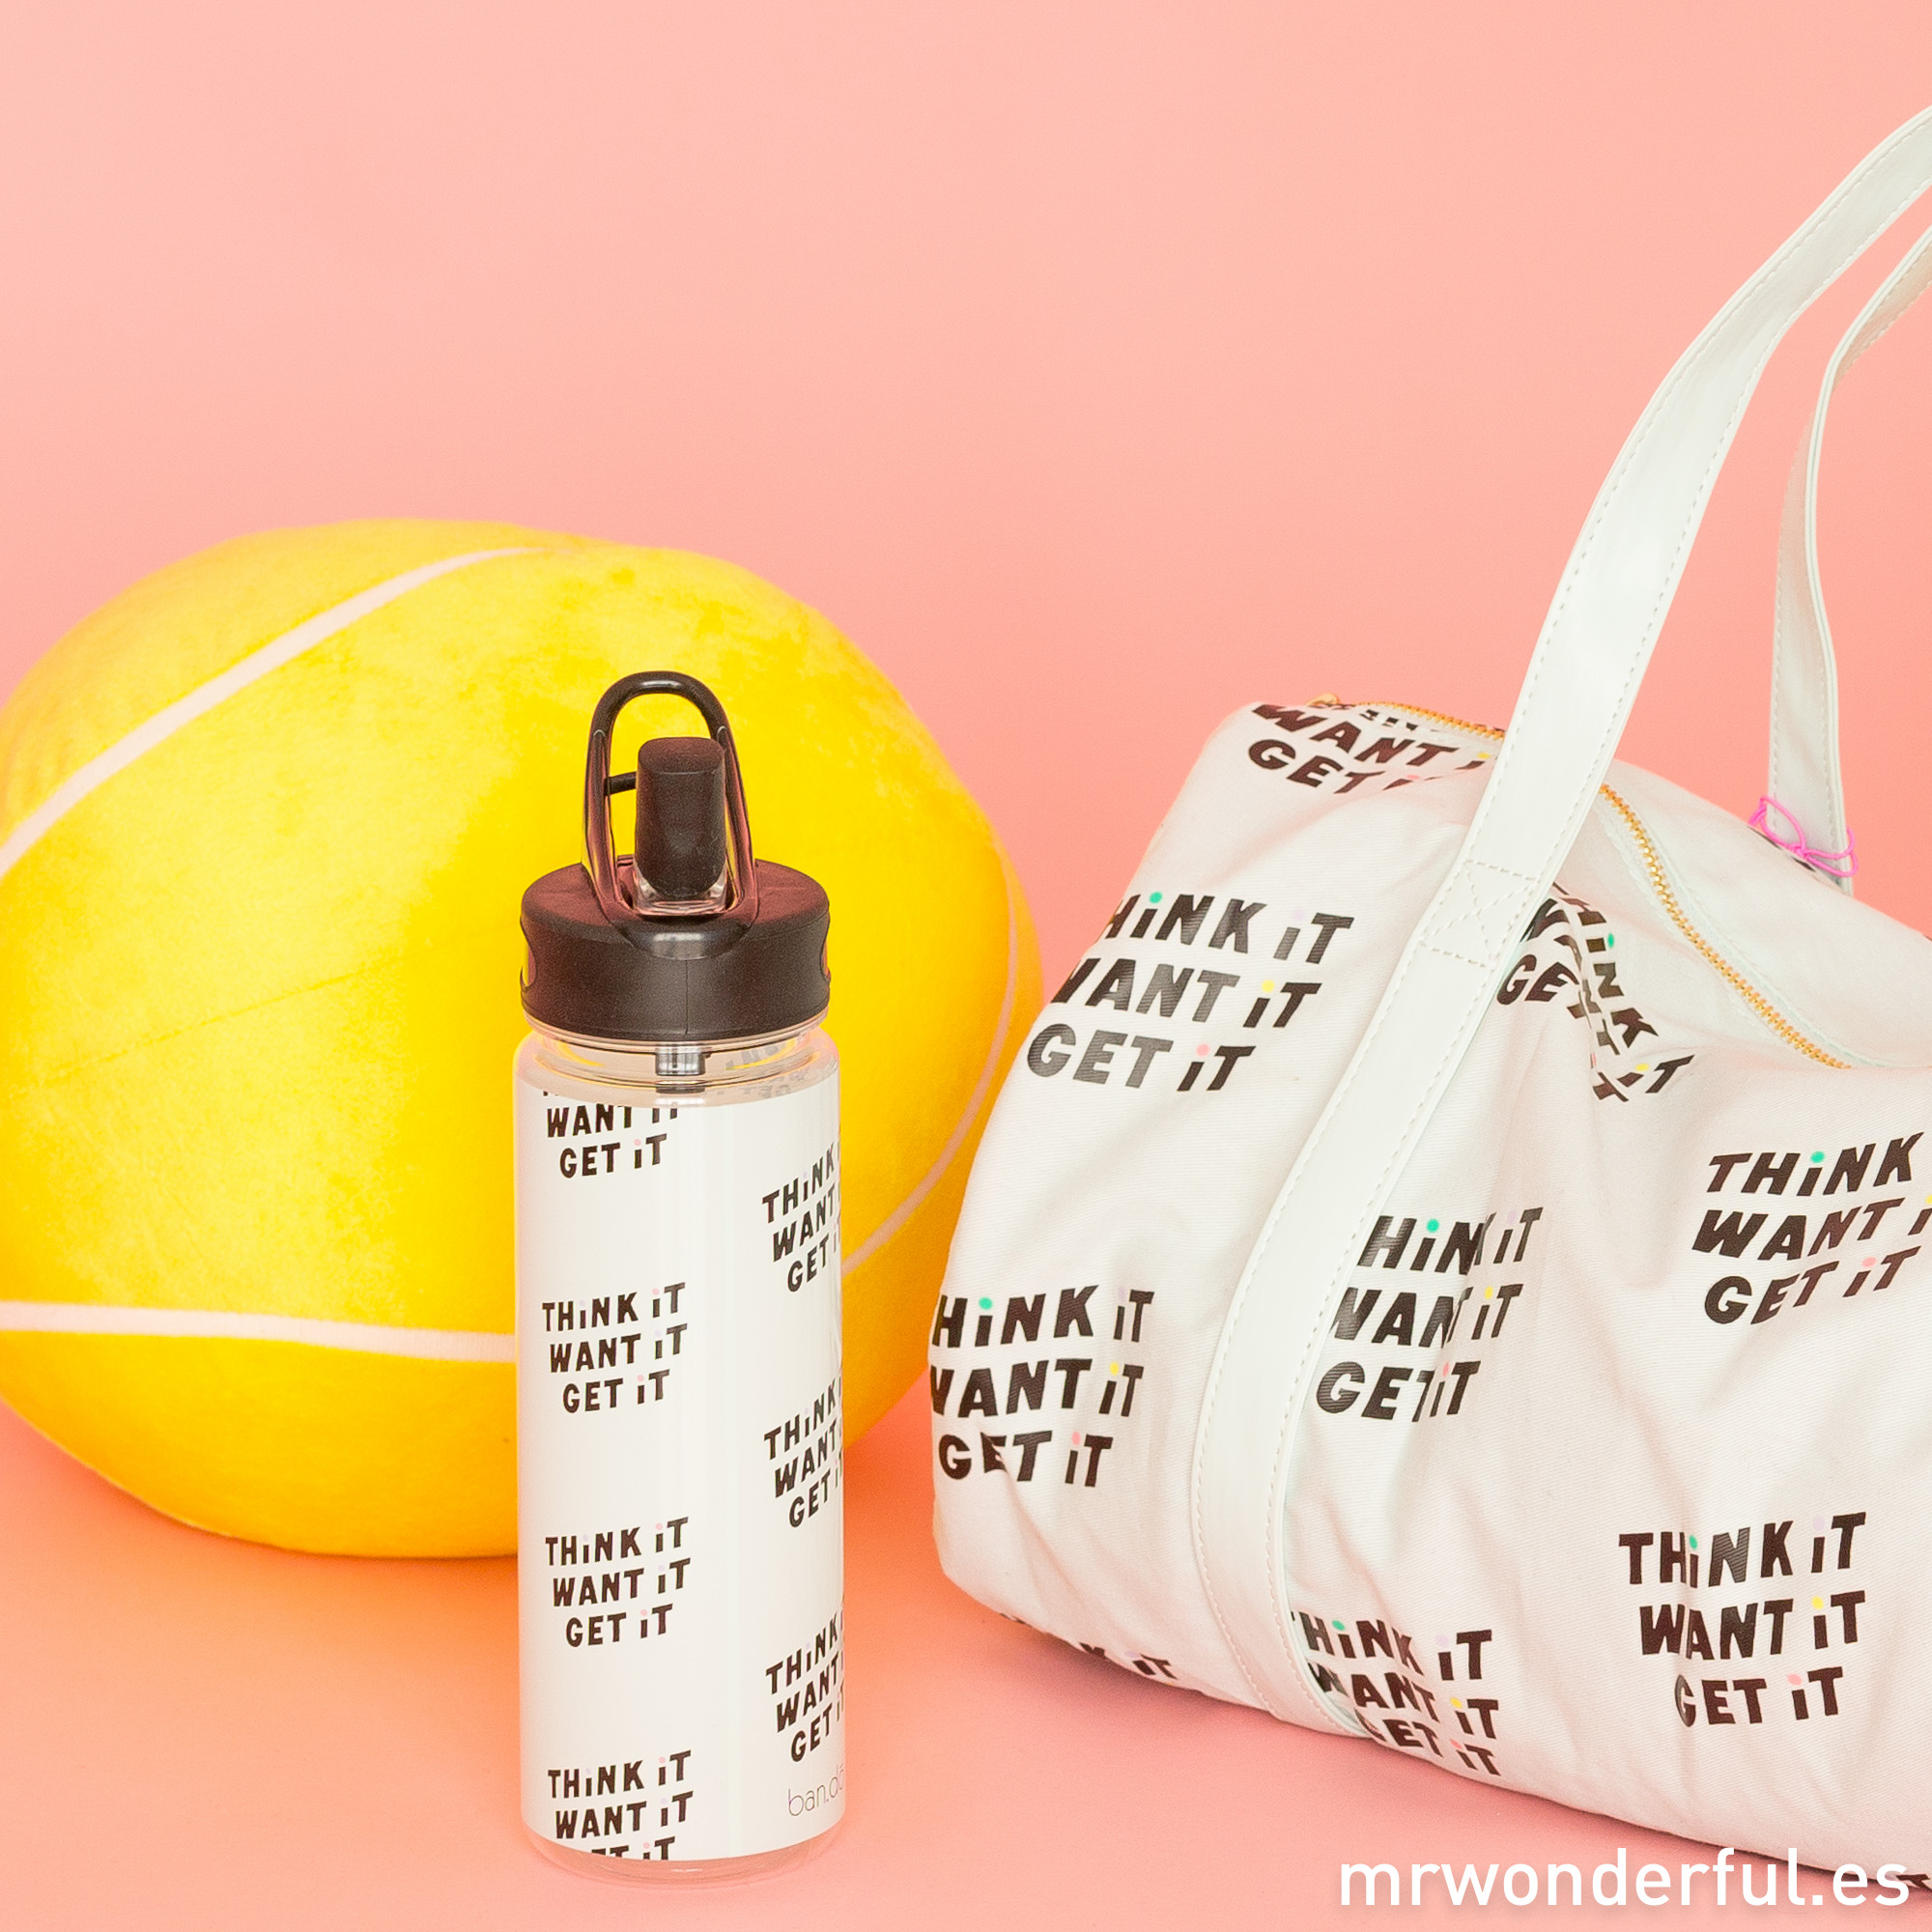 mrwonderful_PRA02813_Botella-para-deporte-Think-it-want-it-get-it-2